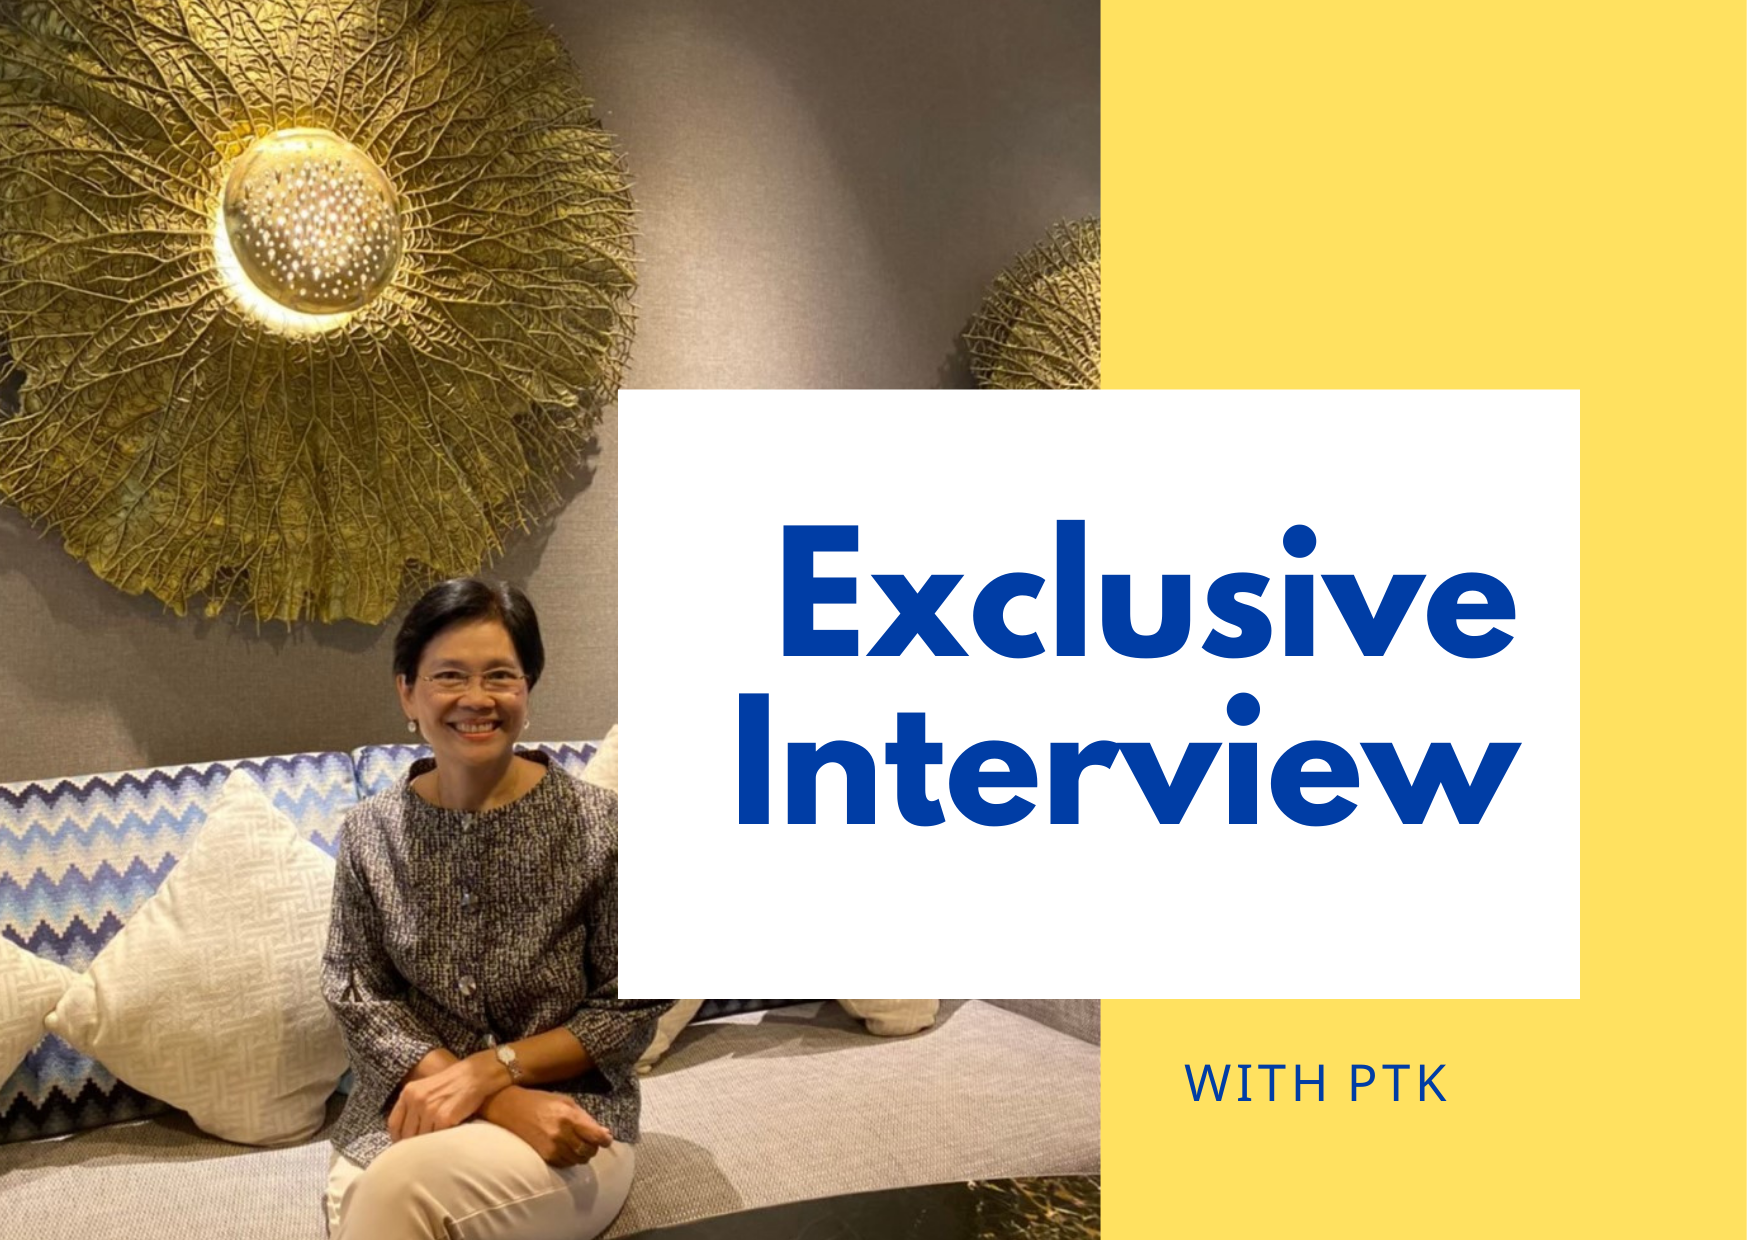 Exclusive Interview with PTK